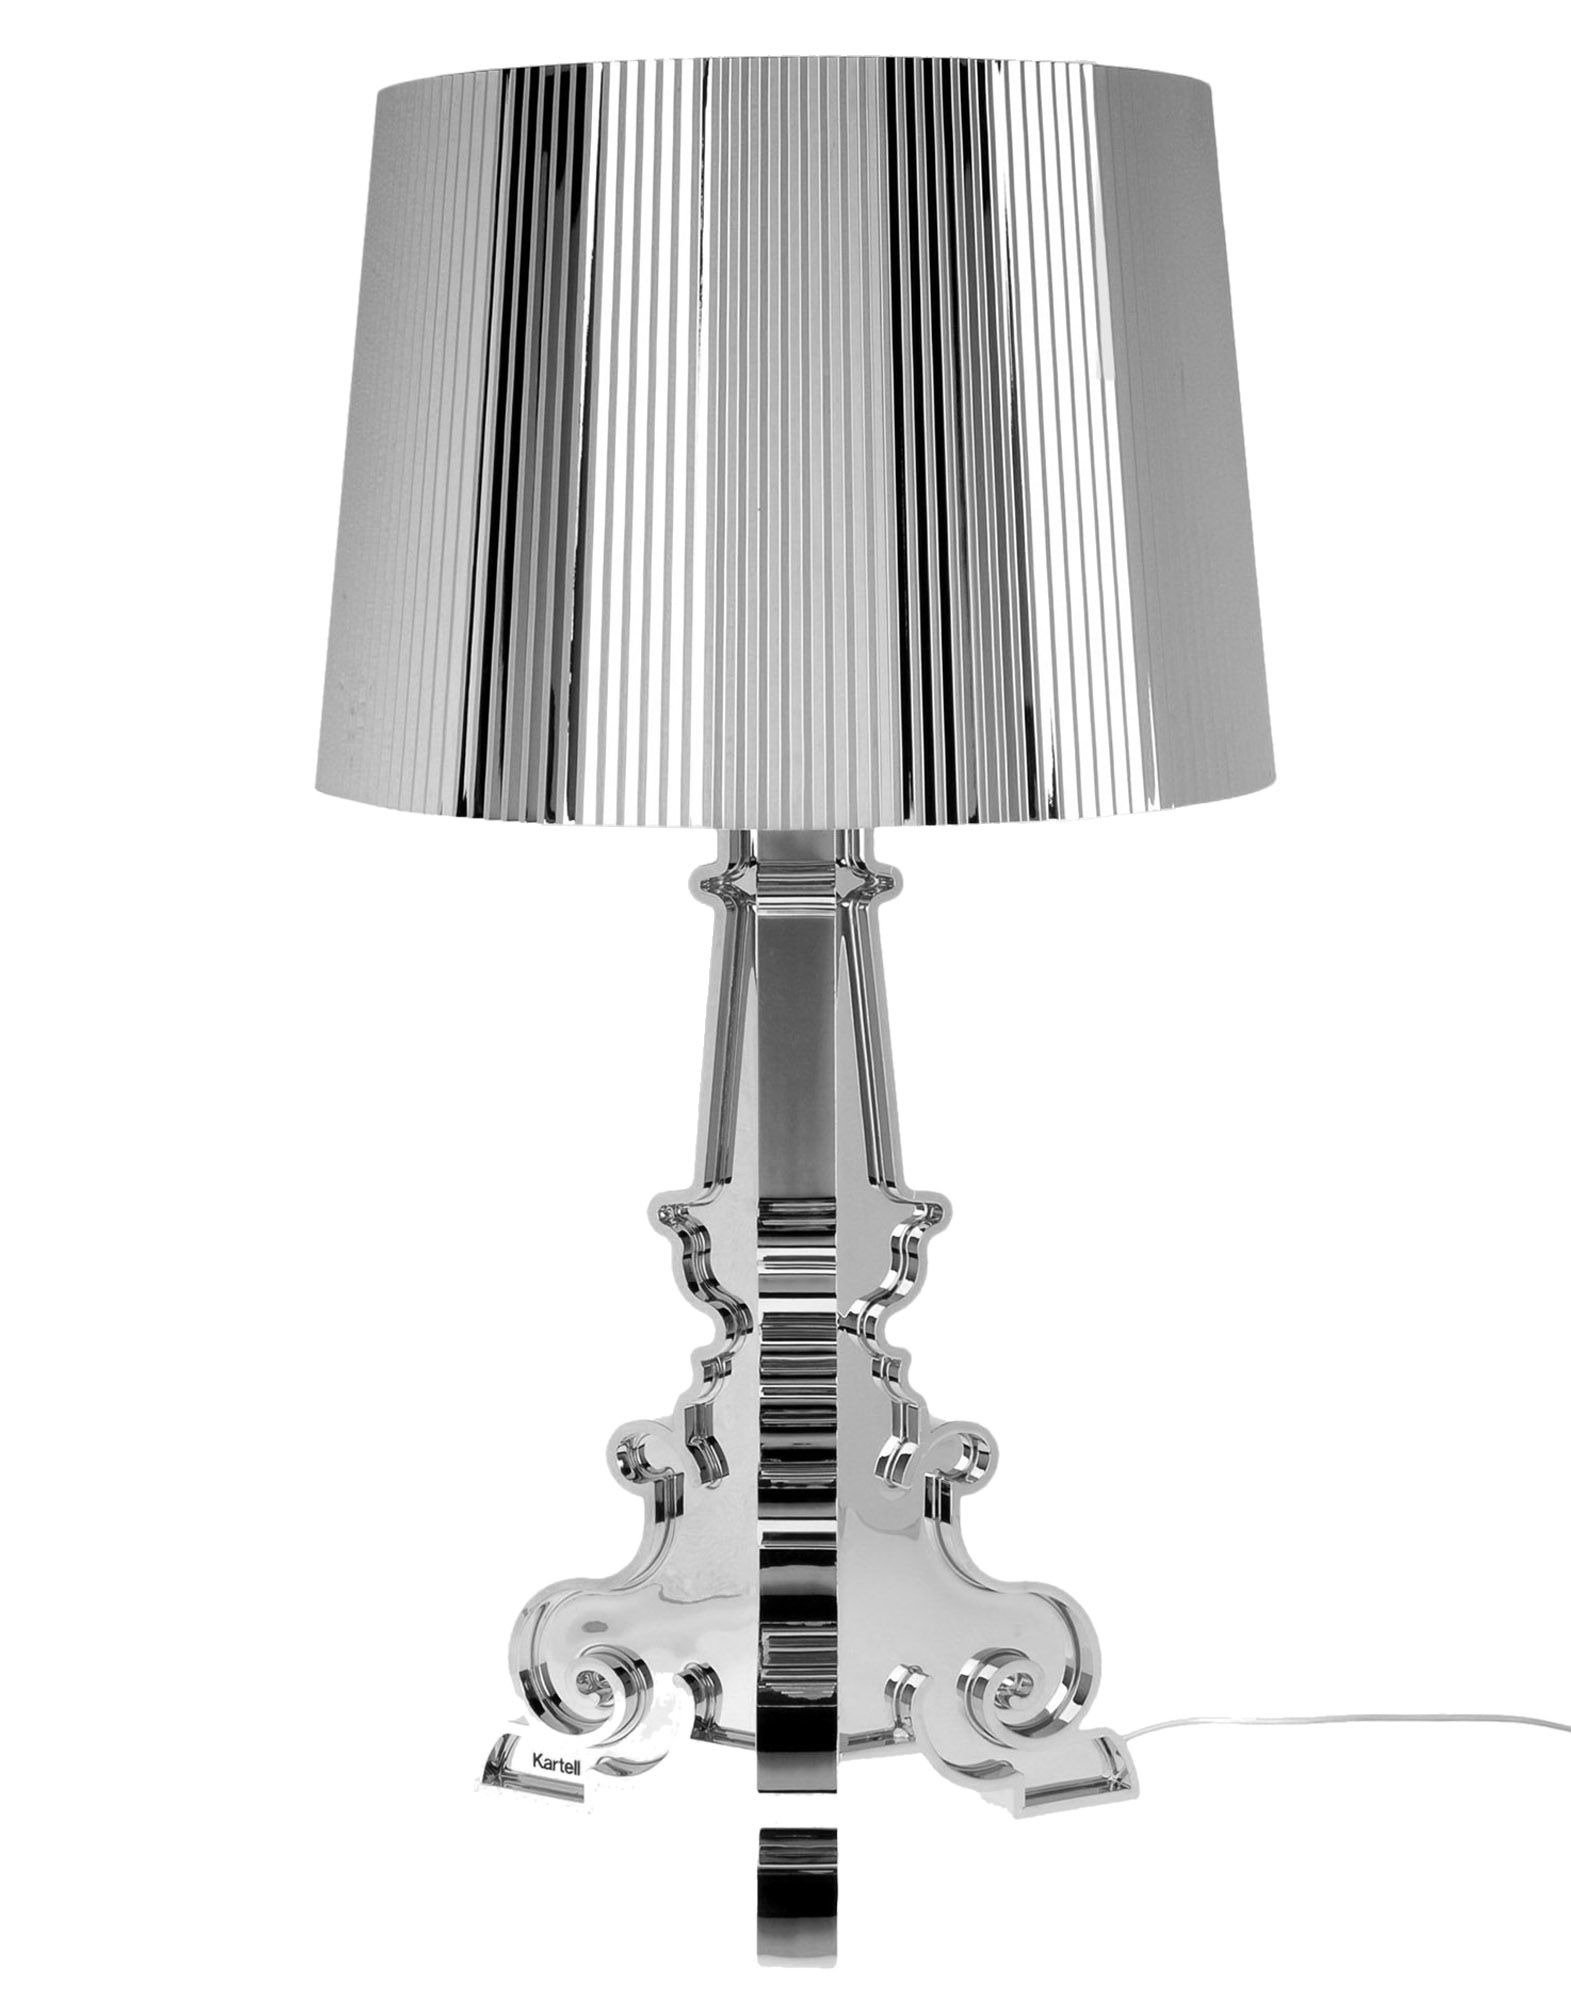 KARTELL Настольная лампа led ceiling lights with remote control modern living room children room lamp bedroom lighting fixtures home decor 110 220v